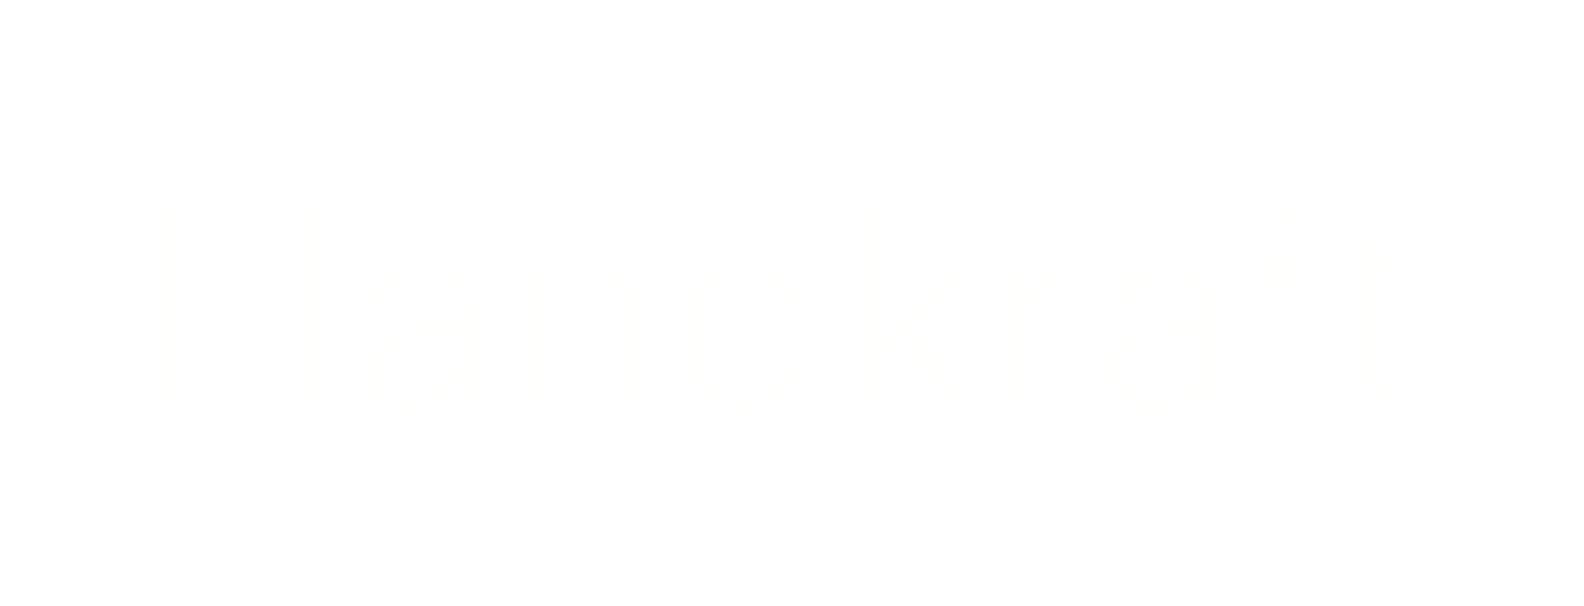 handkraft_main_logo_white_png